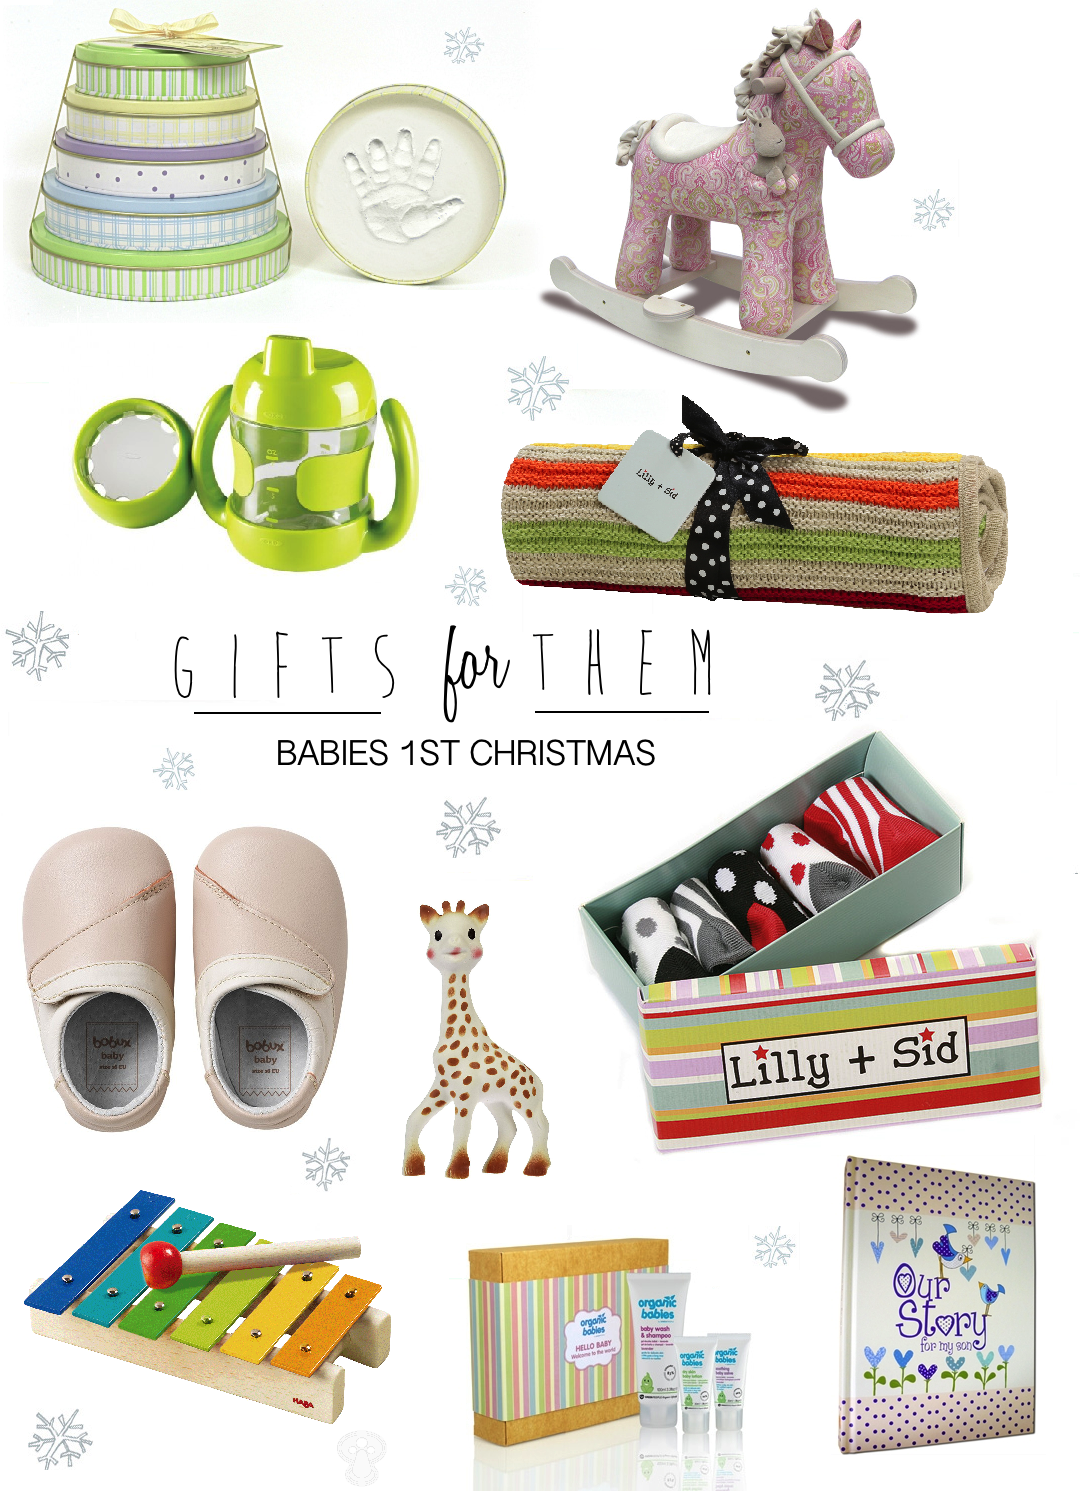 Christmas Gift Ideas For Newborn Baby : Christmas gift guide baby s st oh so amelia